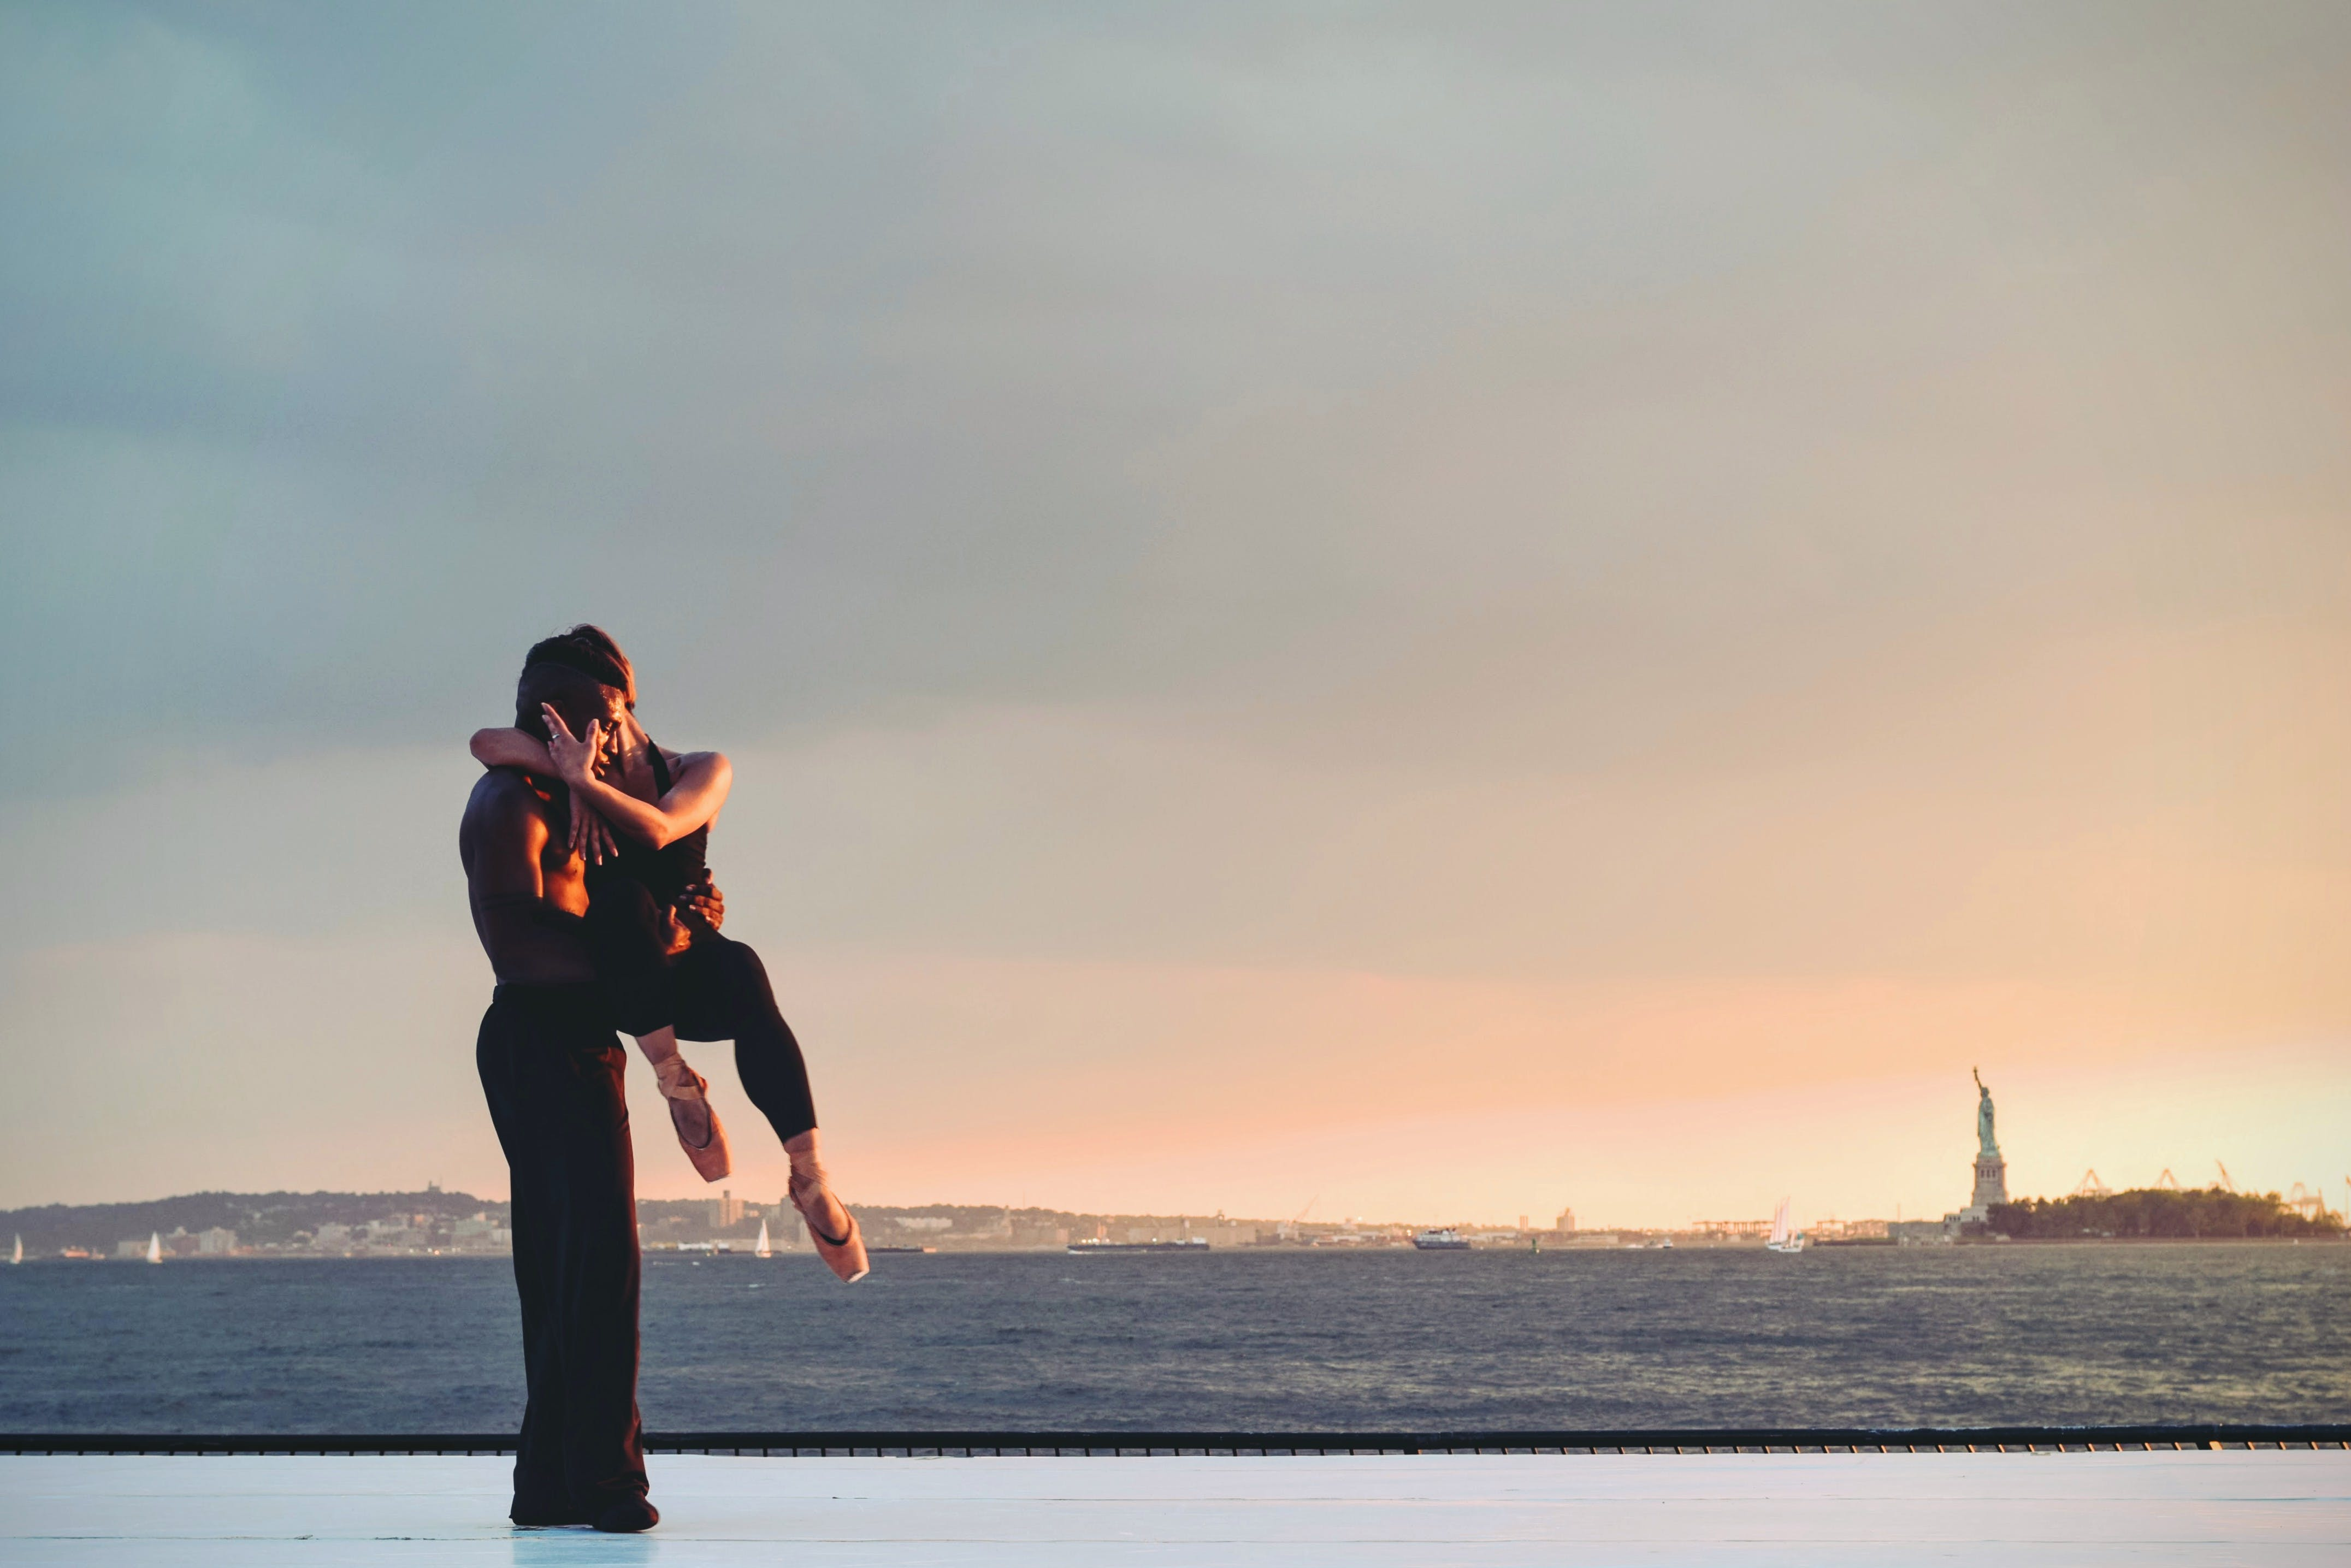 Man Carrying Woman Standing on Beachside